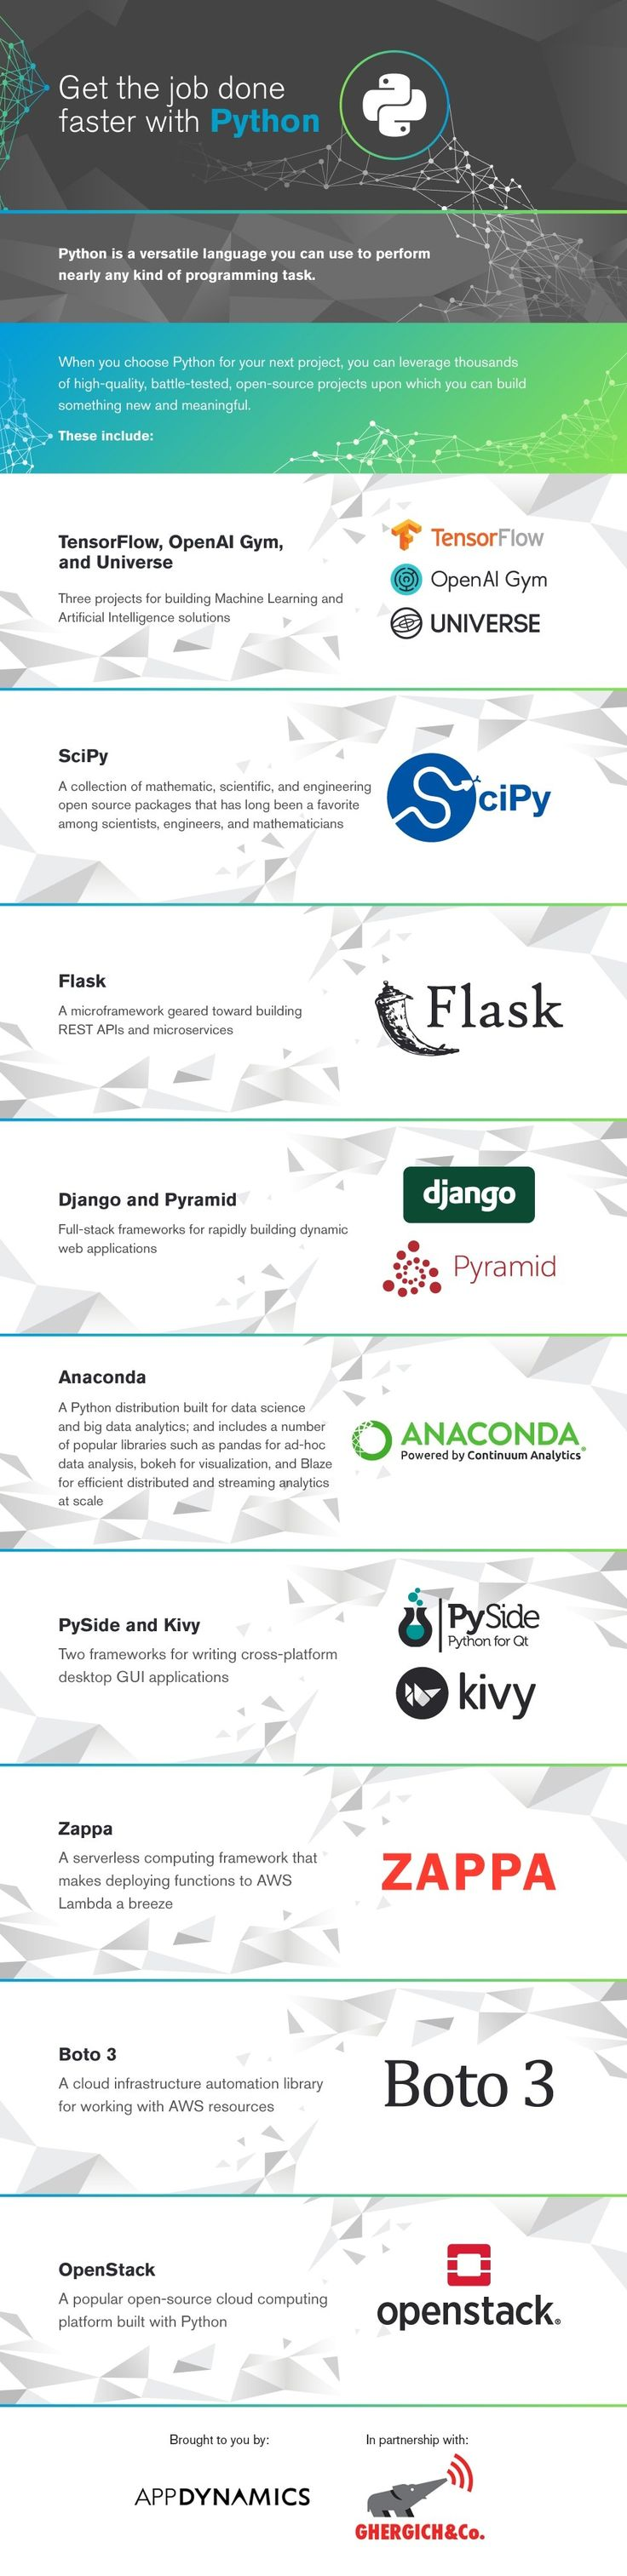 Hi guys! I was recently contacted by folks from AppDynamics (a part of CISCO). They shared an infographic with me which listed 13 Python libraries. These libraries were categorized in sections. I l…